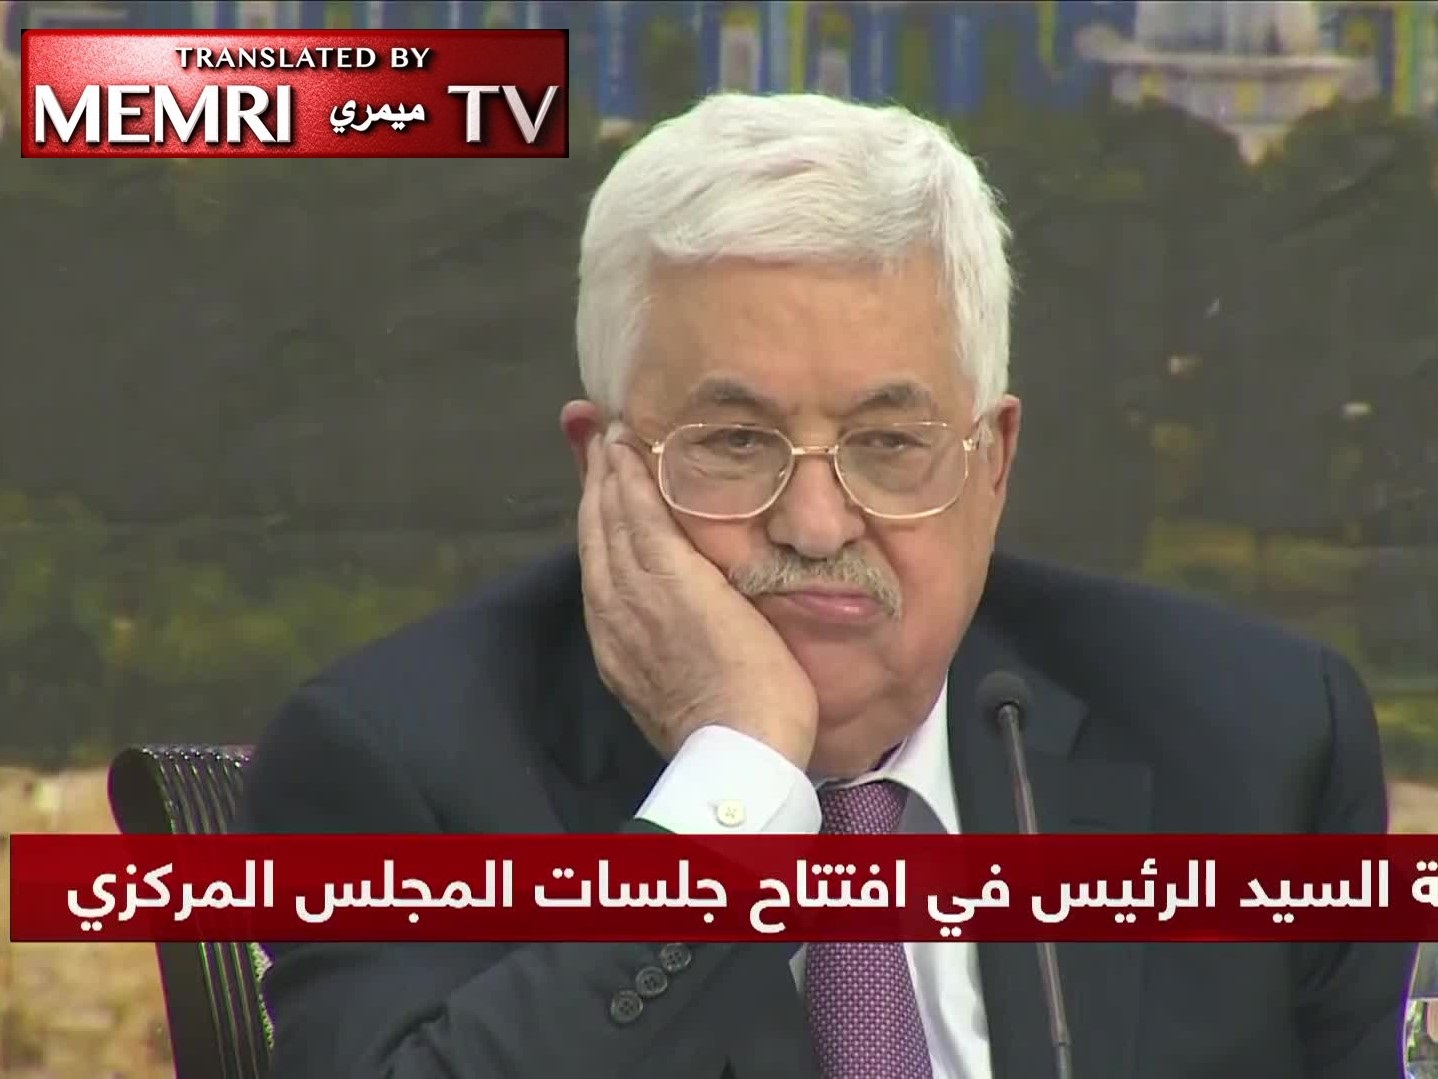 Mahmoud Abbas: The PLO Should Reexamine Its Agreements with Israel; We Will No Longer Accept the U.S. as Mediator